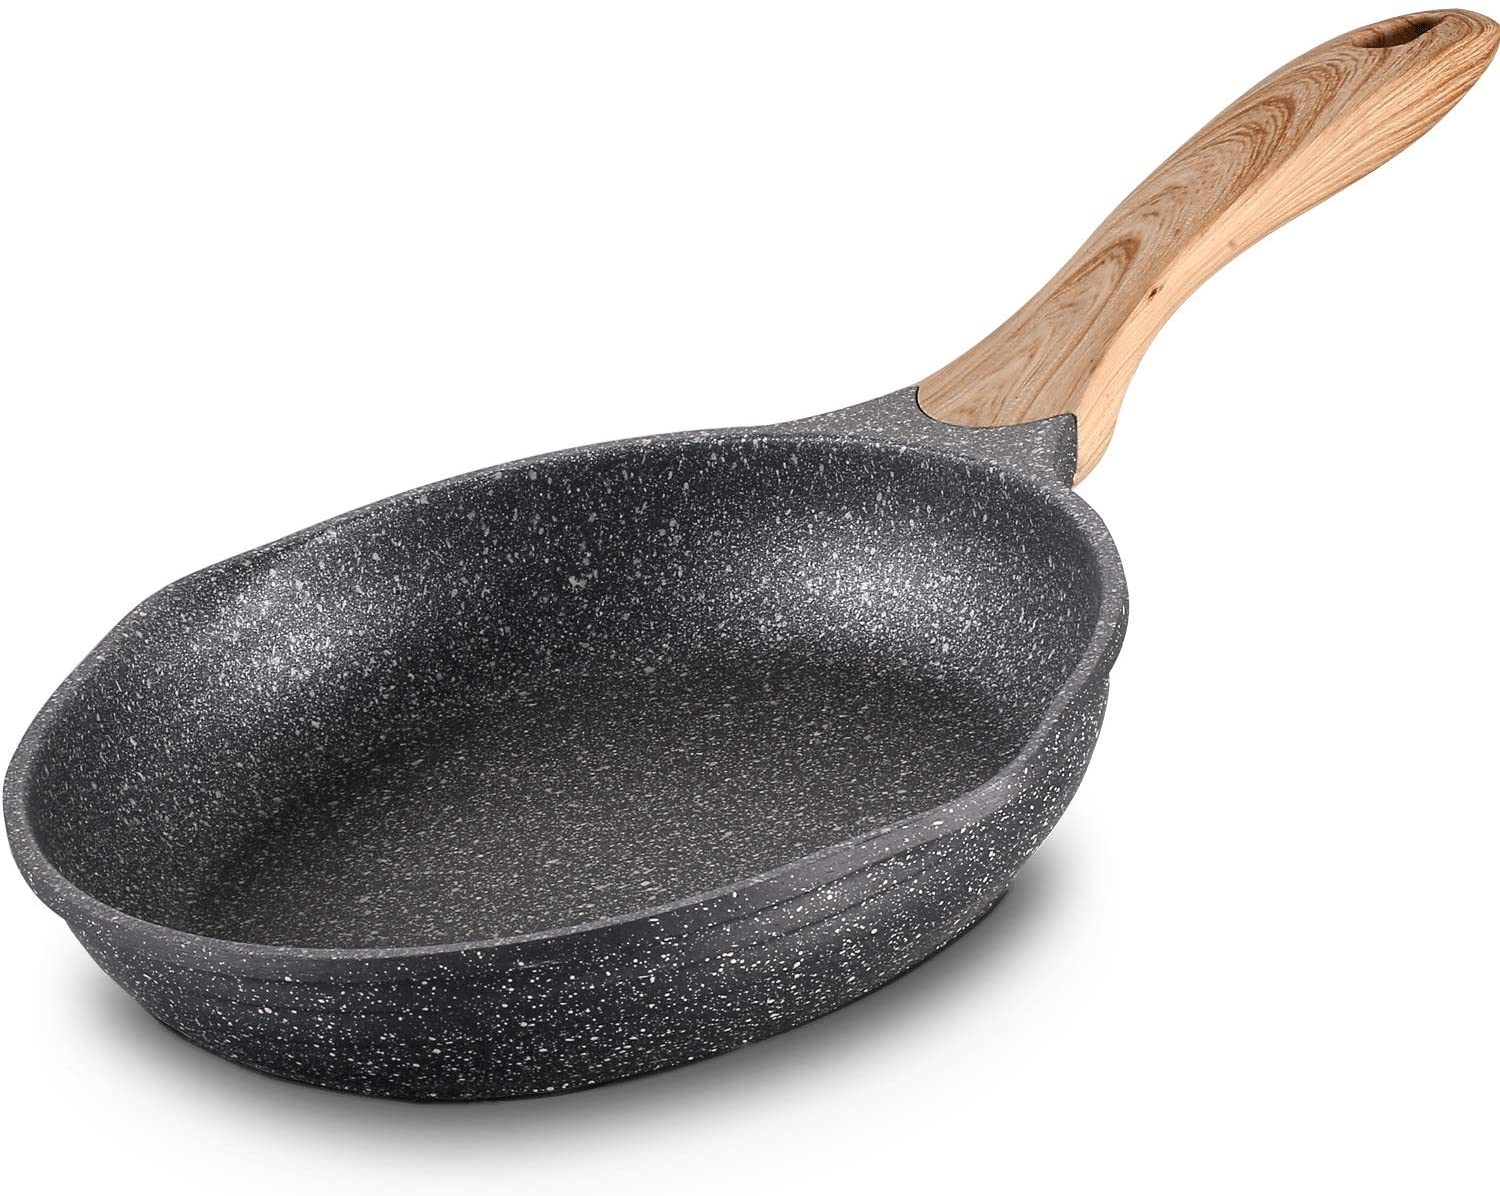 Jeetee Nonstick Soft Touch Handle Induction Stone Frying Pan, 8-Inch